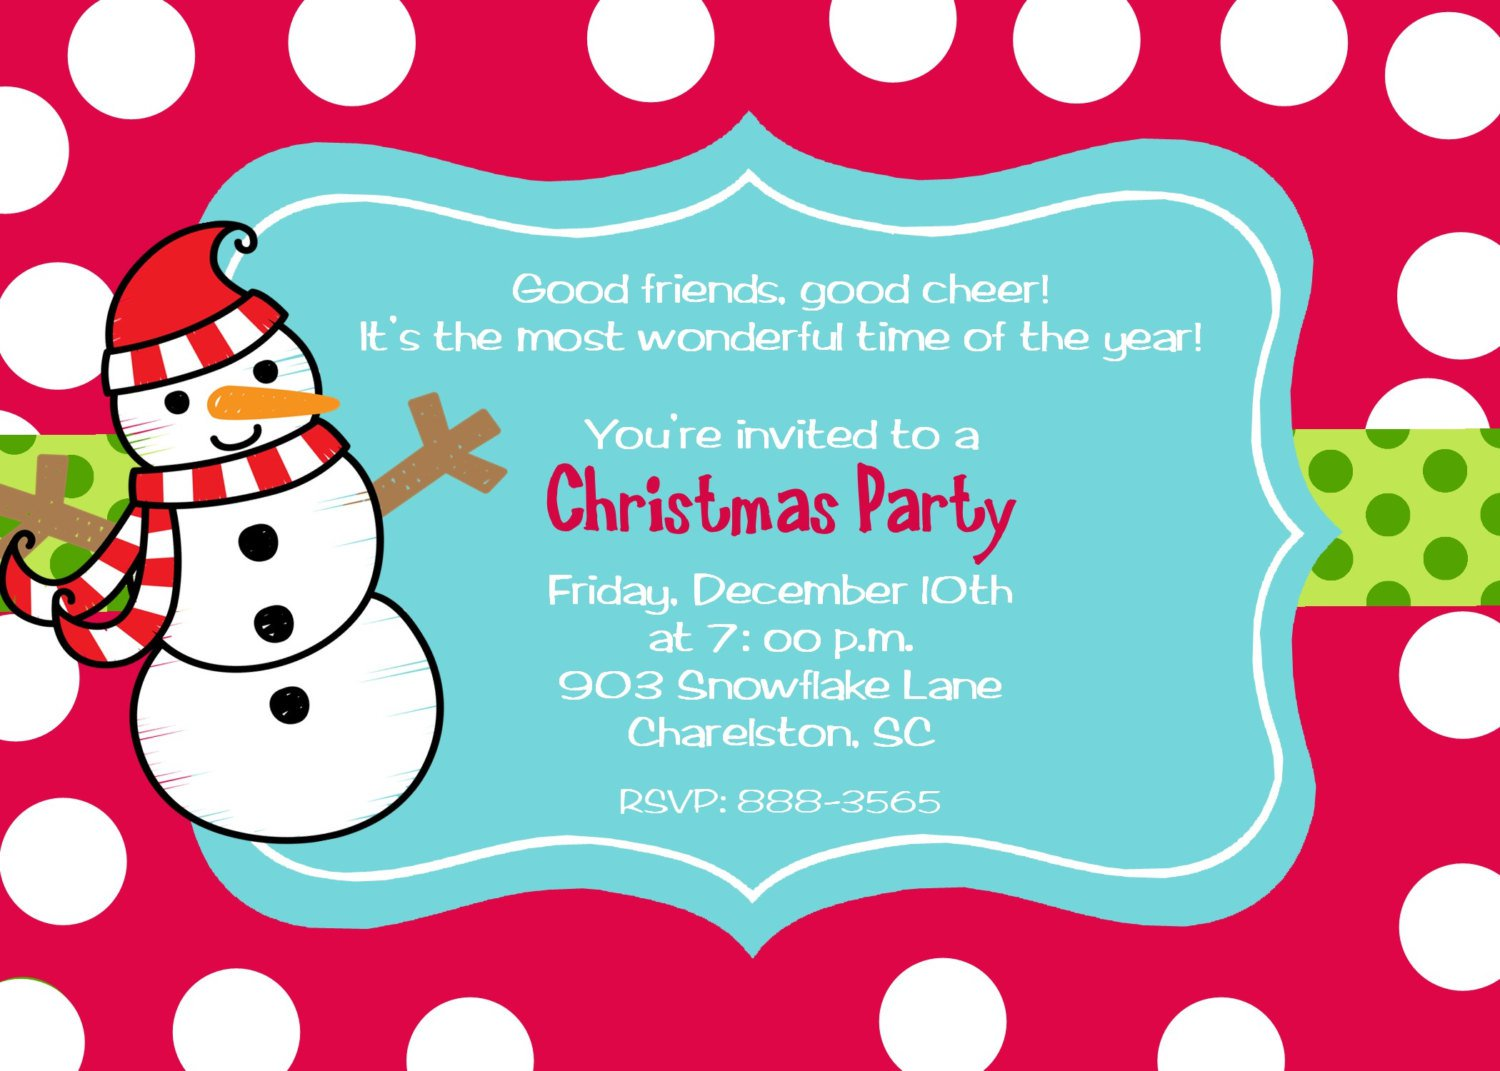 Party Invitation Wording Humorous – Invitation to a Christmas Party